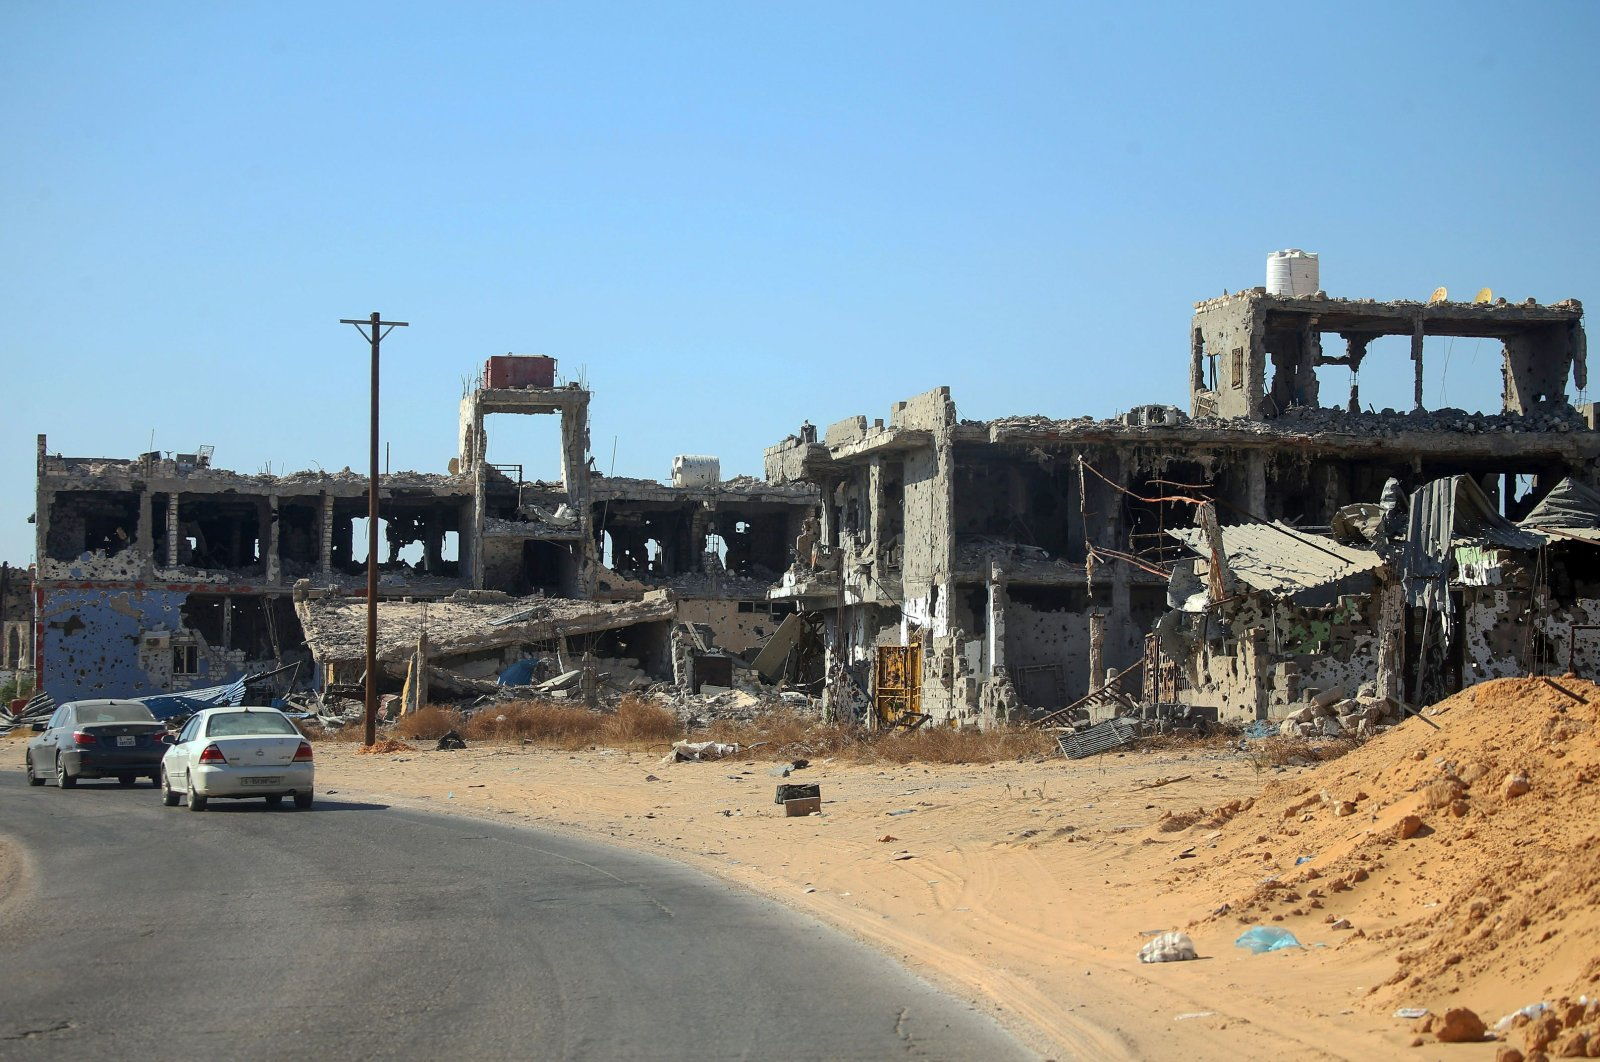 Residential buildings, damaged during the 14 months of fighting between the U.N.-recognized Government of National Accord (GNA) and putschist Gen. Khalifa Haftar, are seen in a southern neighborhood in the capital Tripoli, Libya, July 9, 2020. (AFP Photo)